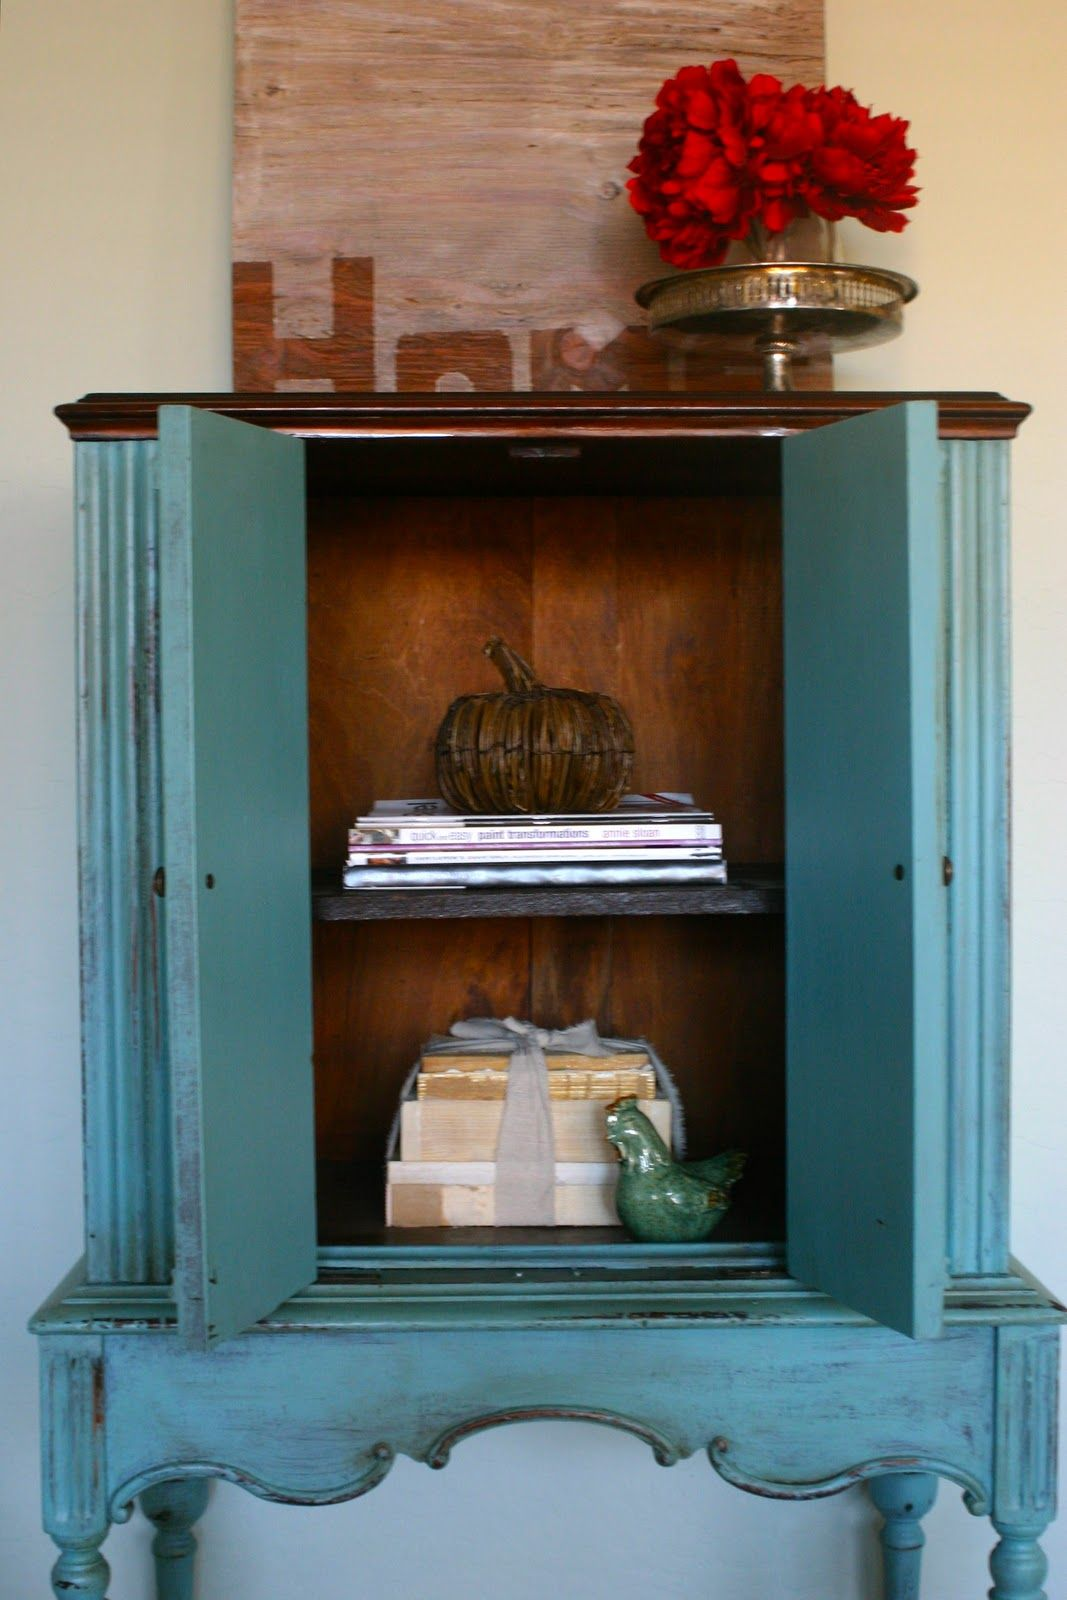 anne story of antique radio cabinet | Search Results |  becauseiliketodecorate. - Anne Story Of Antique Radio Cabinet Search Results